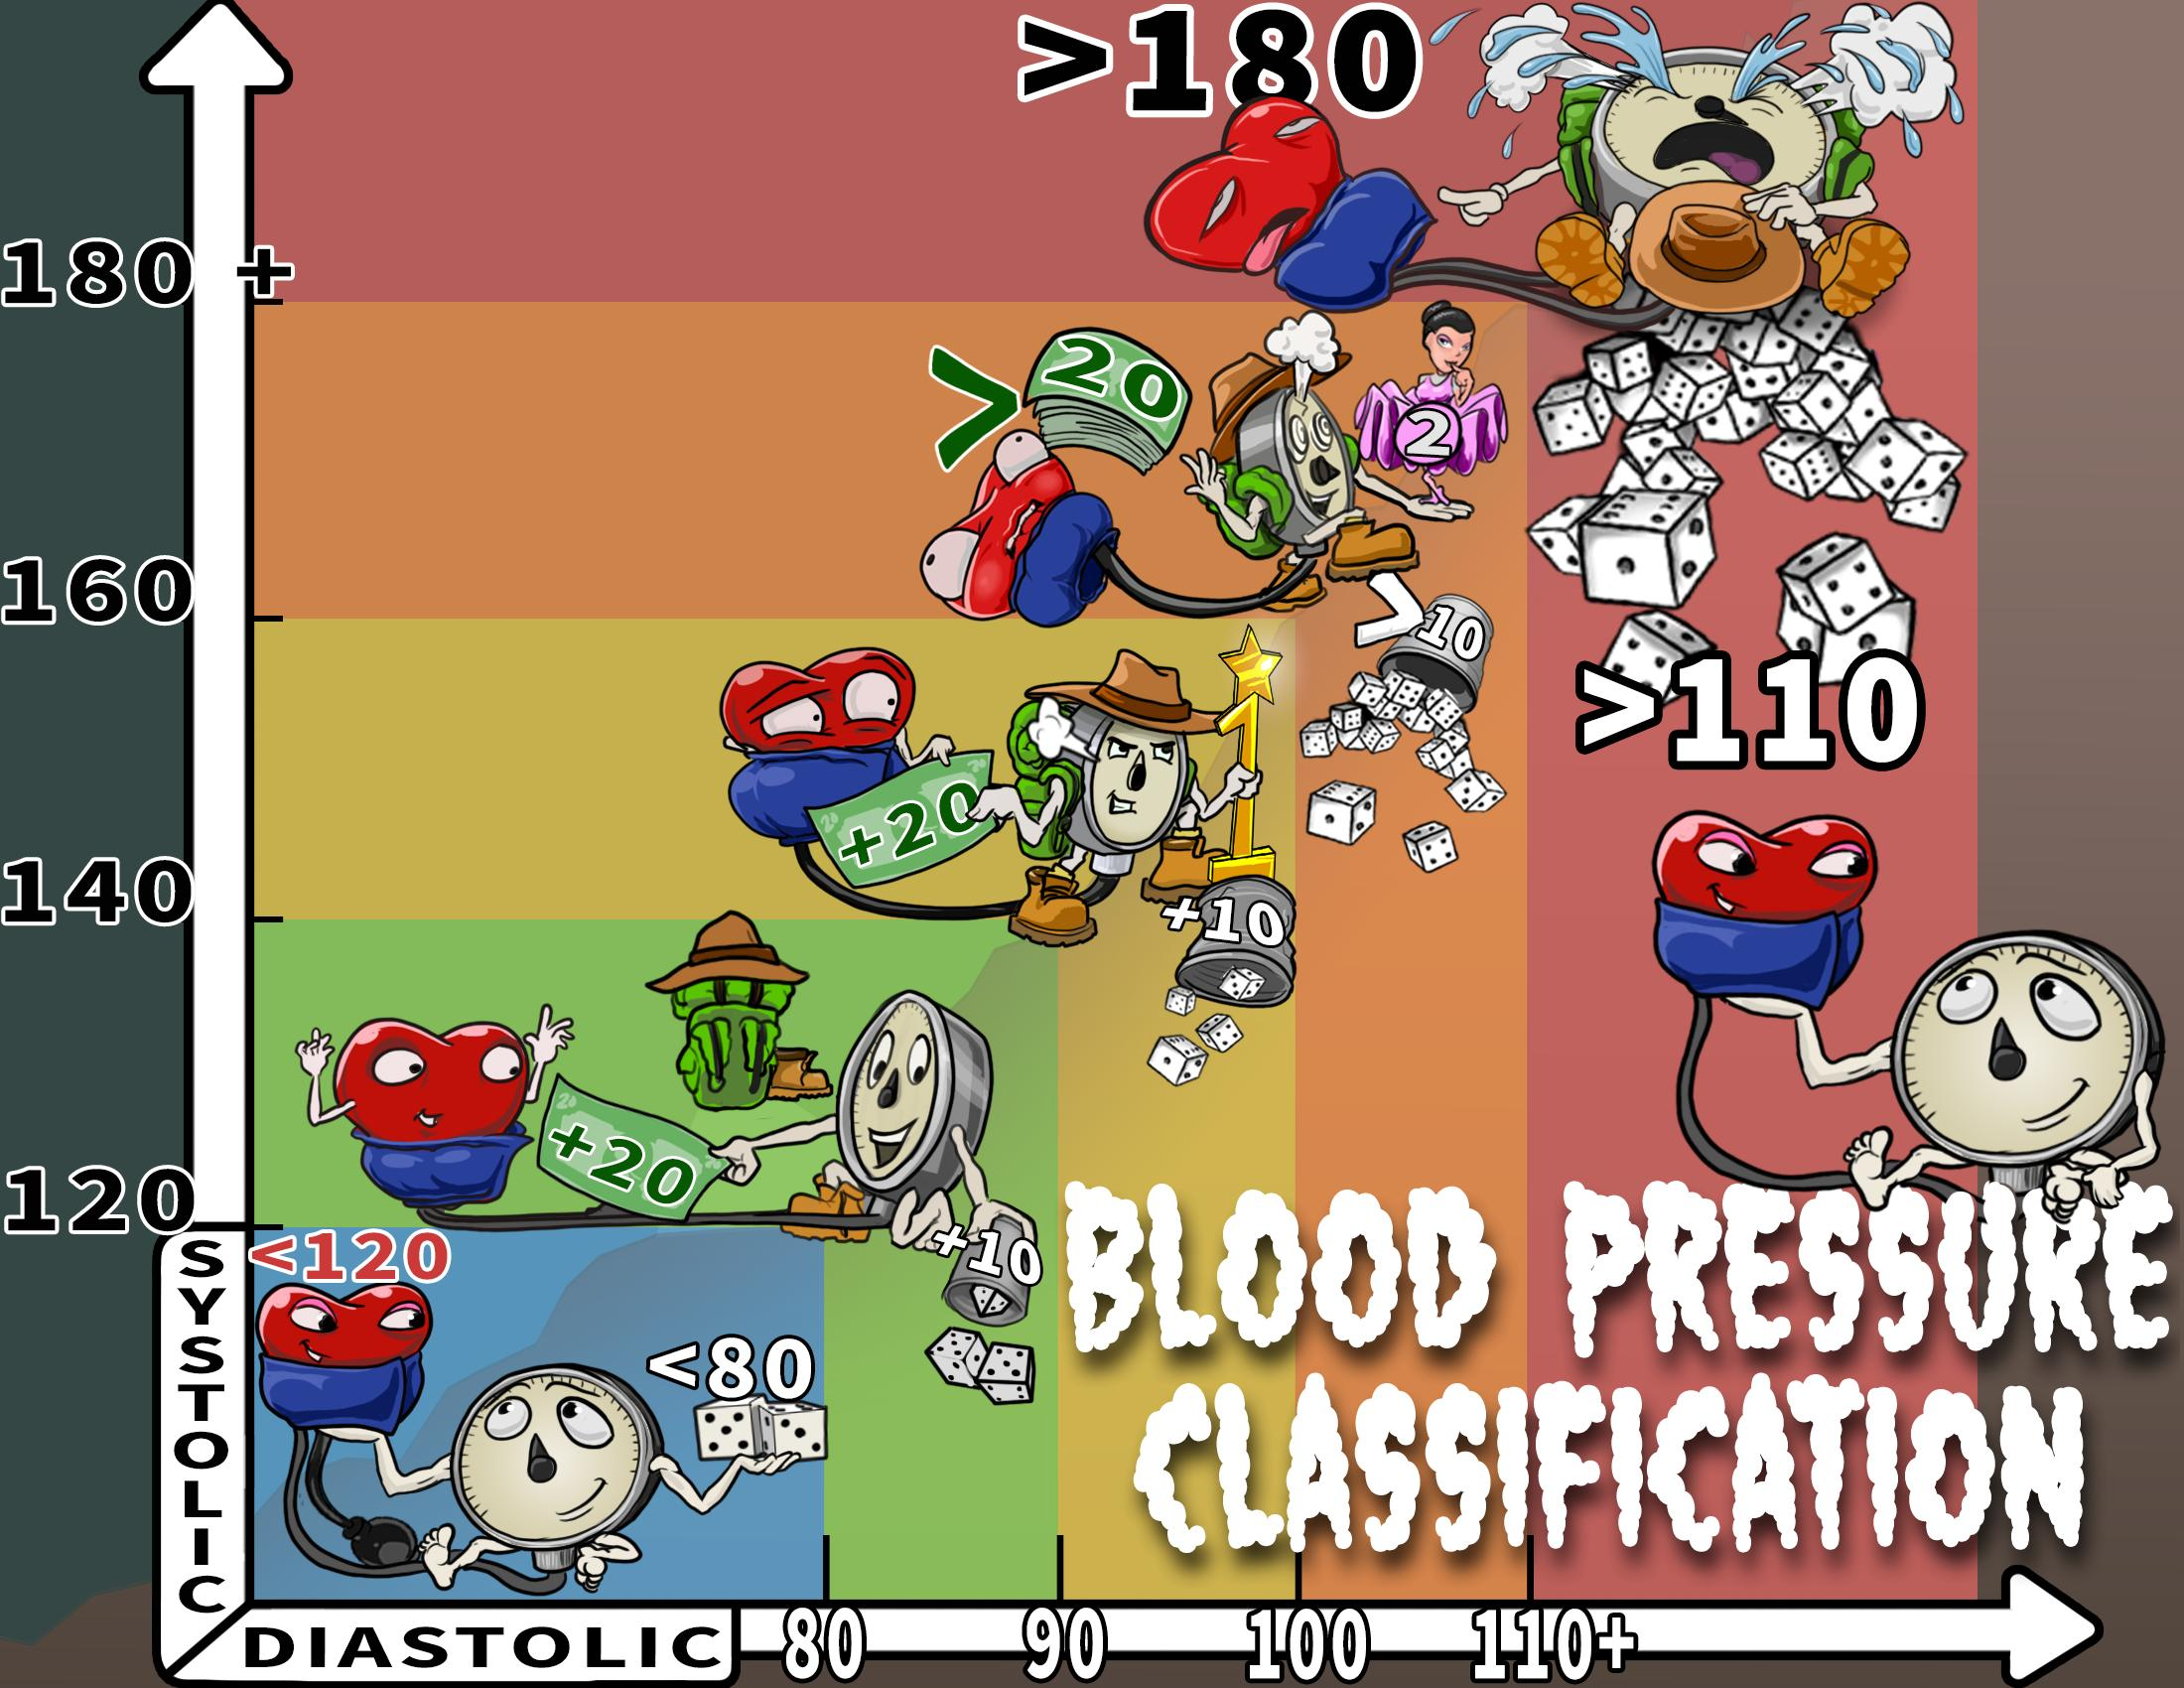 Blood Pressure Classification (JNC 7)